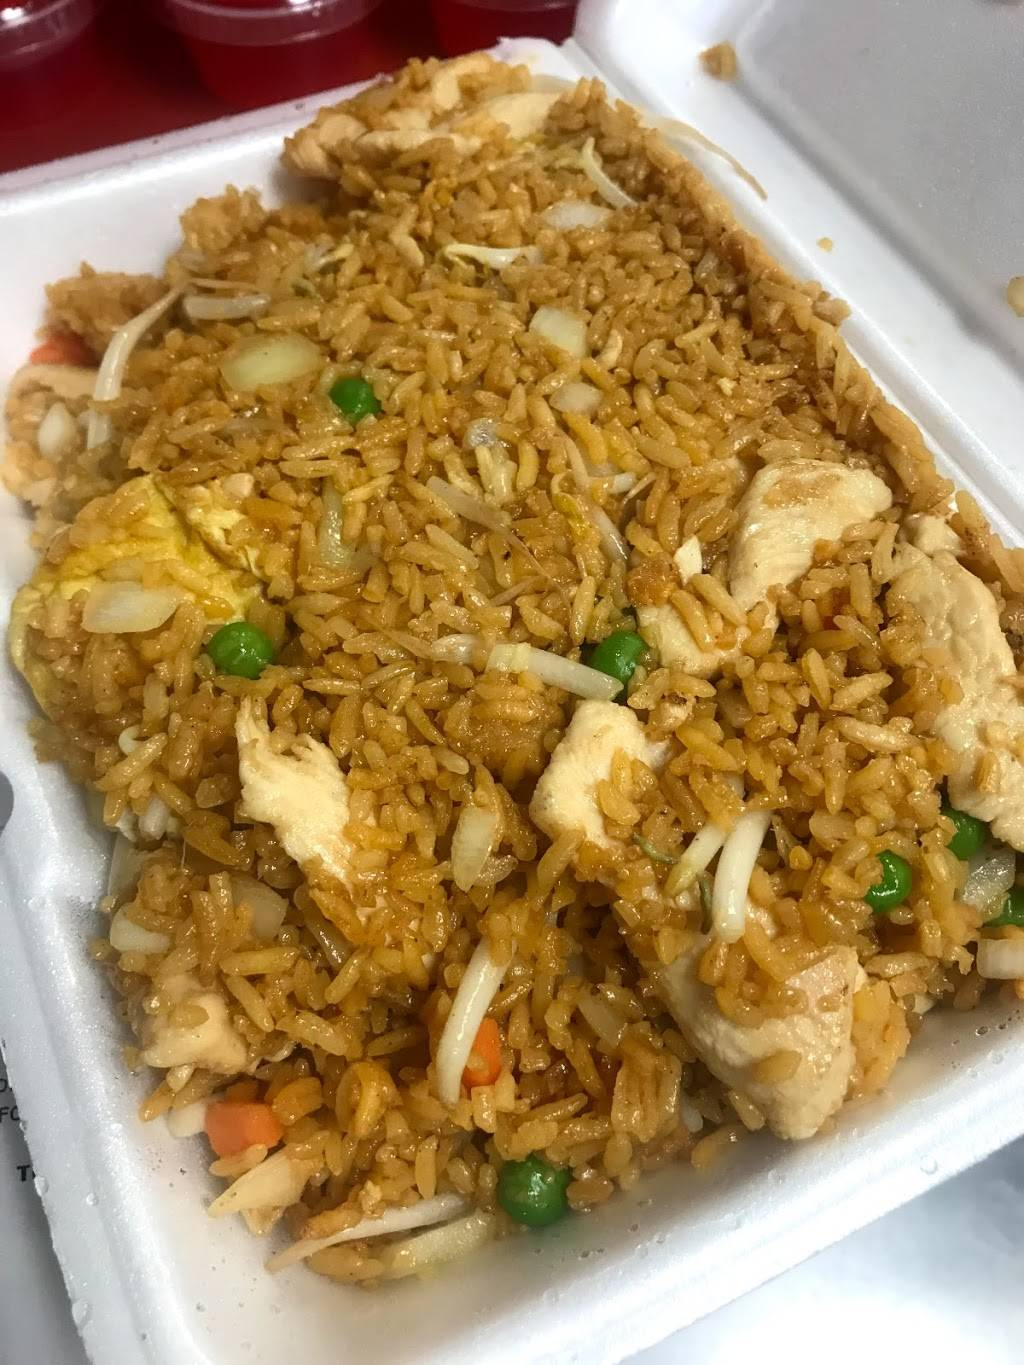 Jackie Chan Chinese Kitchen - meal delivery  | Photo 5 of 9 | Address: 7318 N Federal Blvd, Westminster, CO 80030, USA | Phone: (303) 427-6868